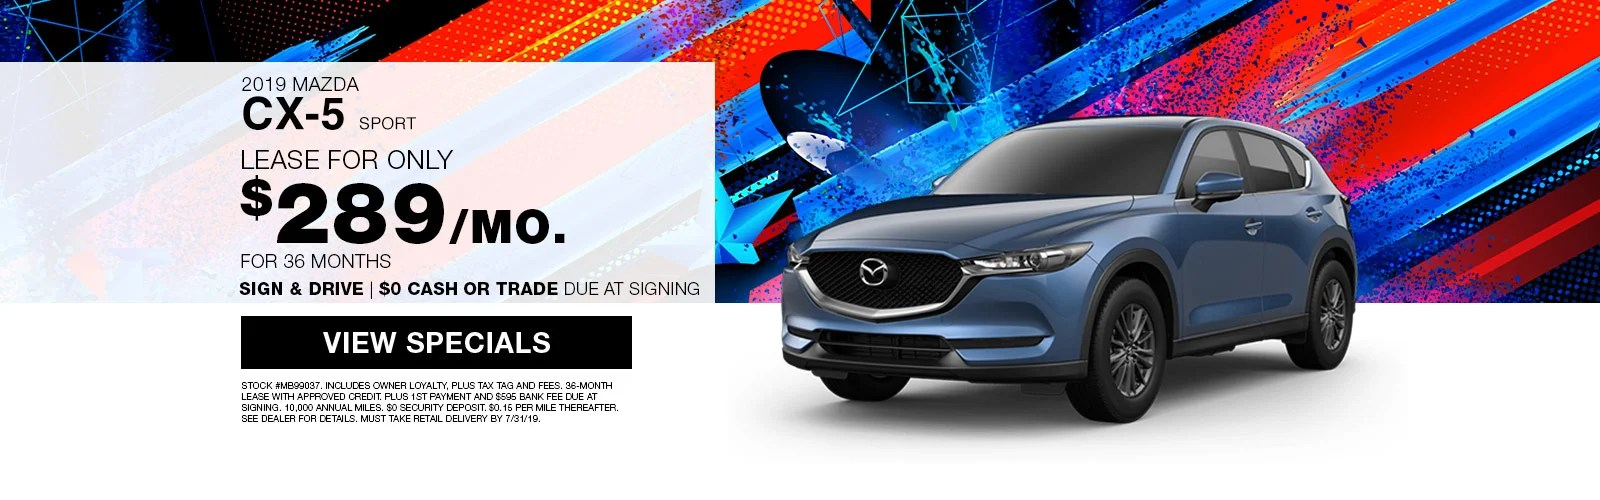 hight resolution of 2019 cx 5 sport lease special